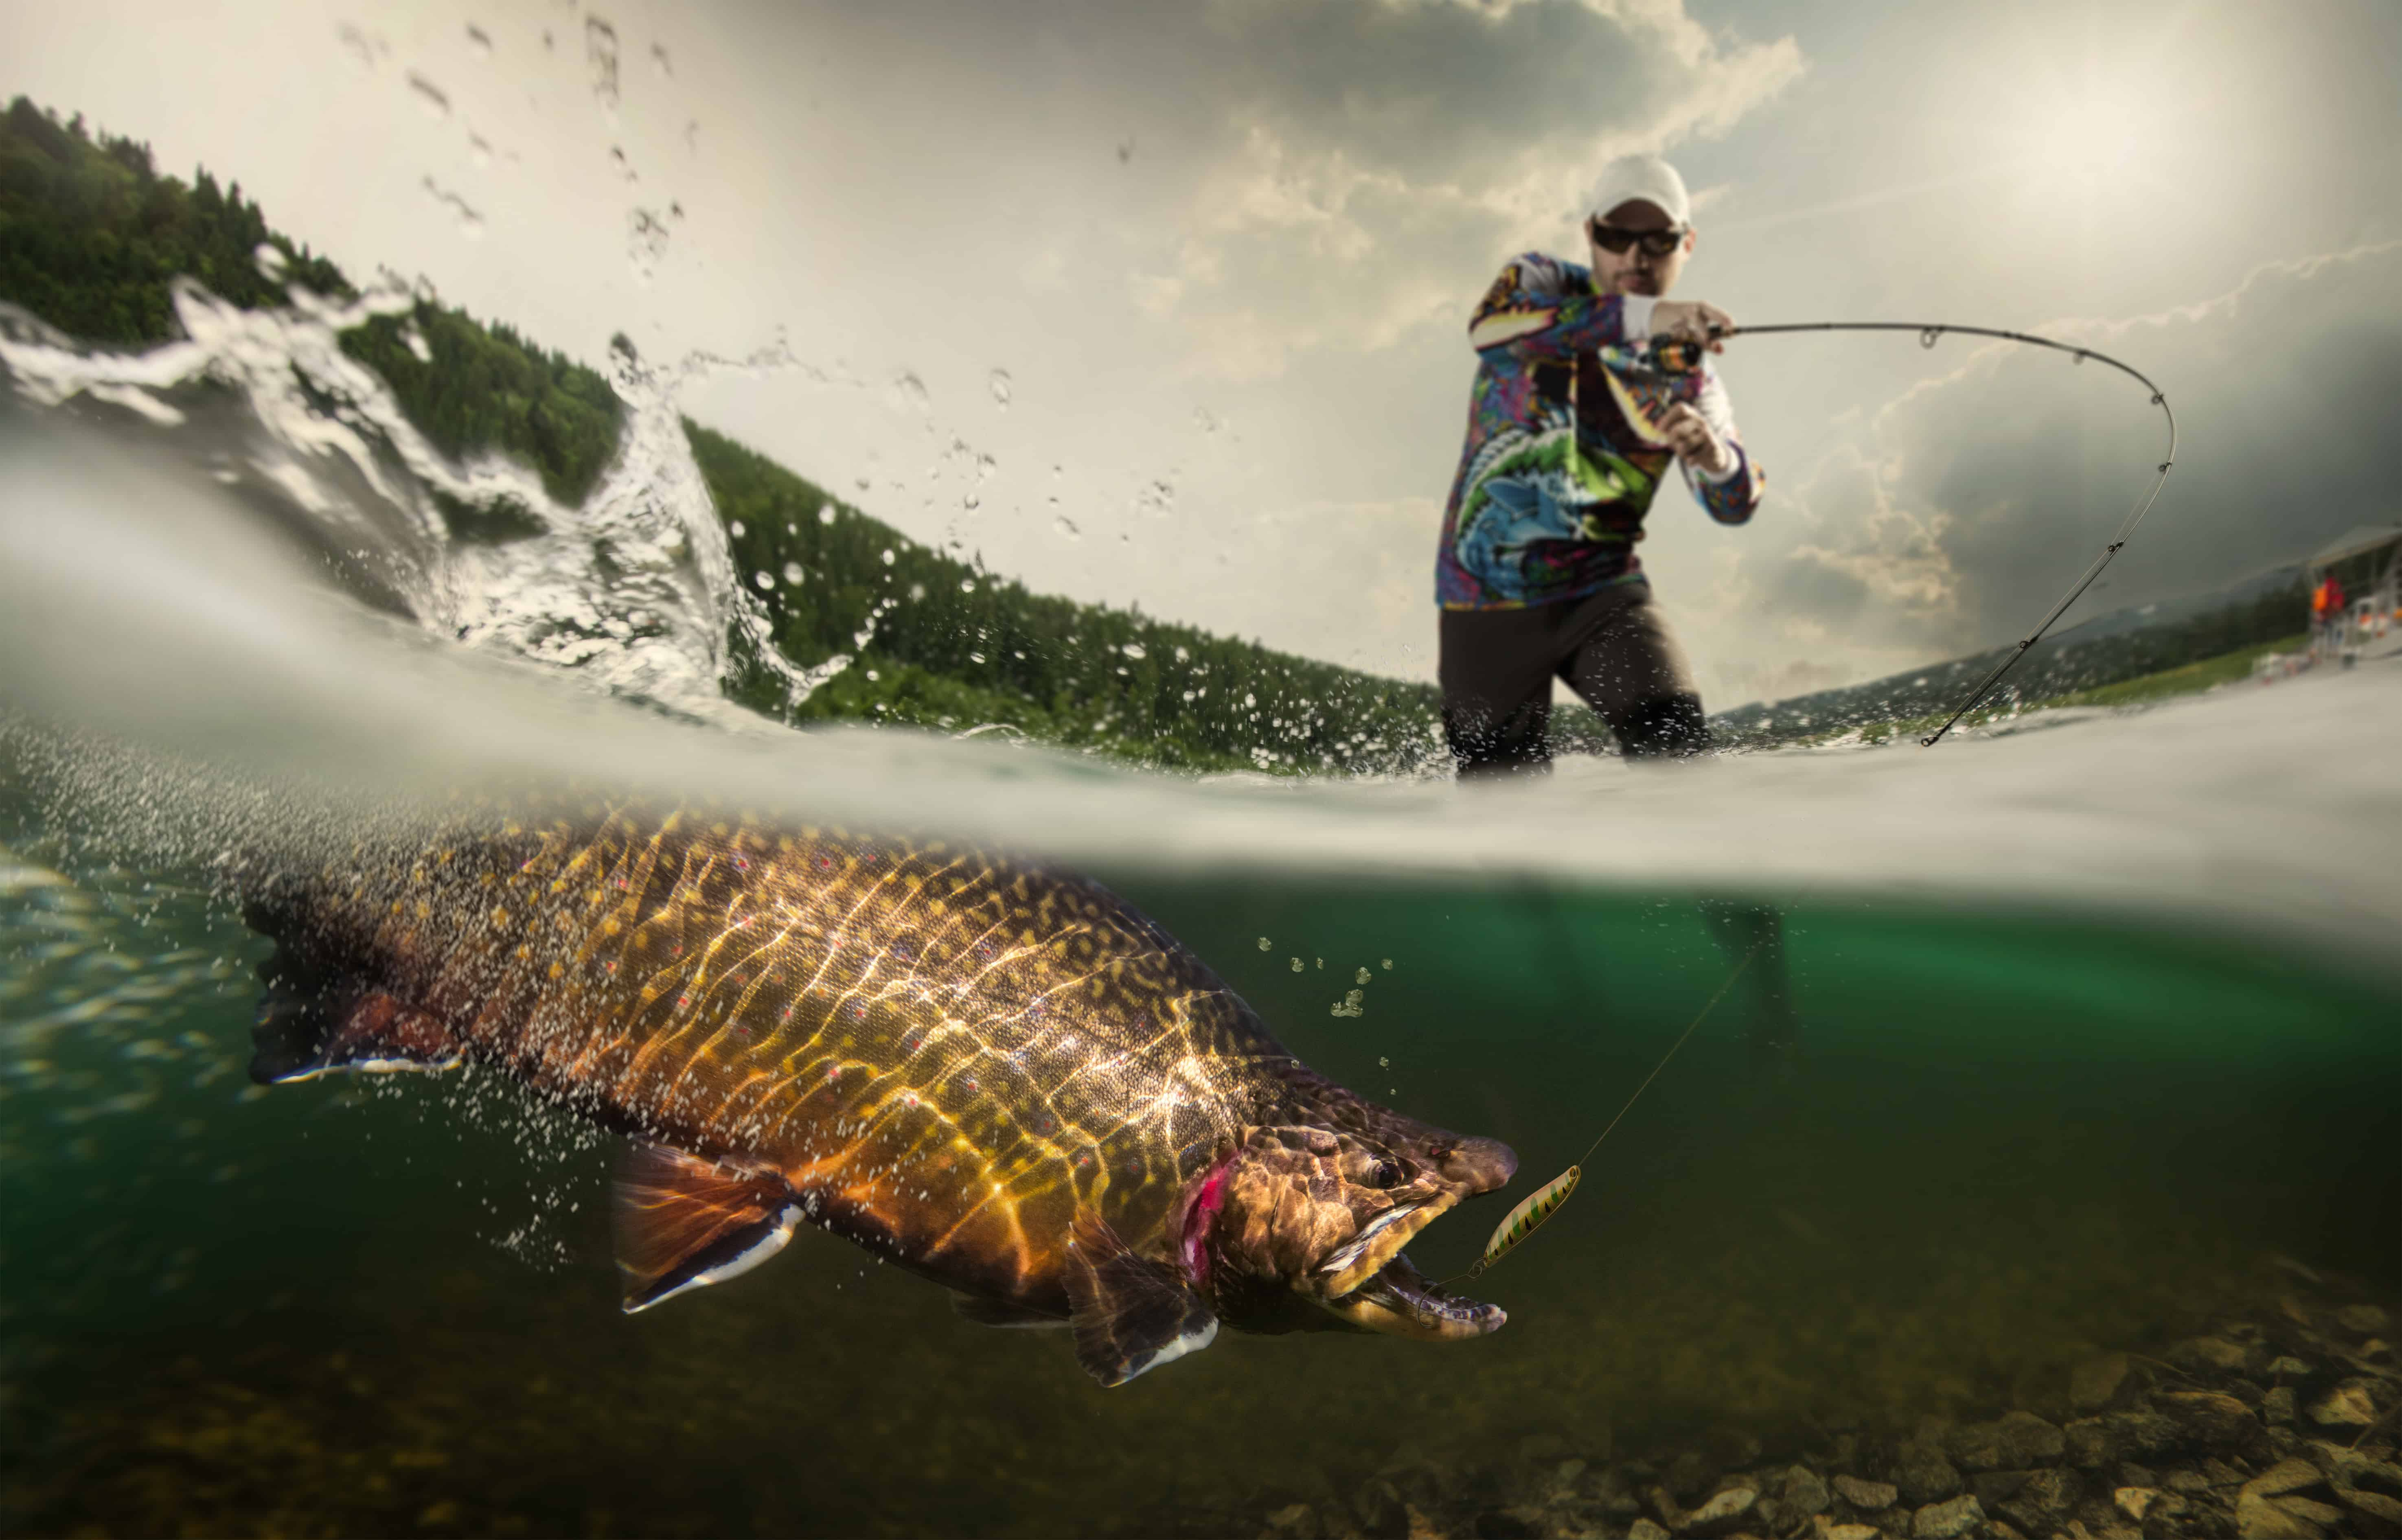 Fishing. Fisherman and trout, underwater view